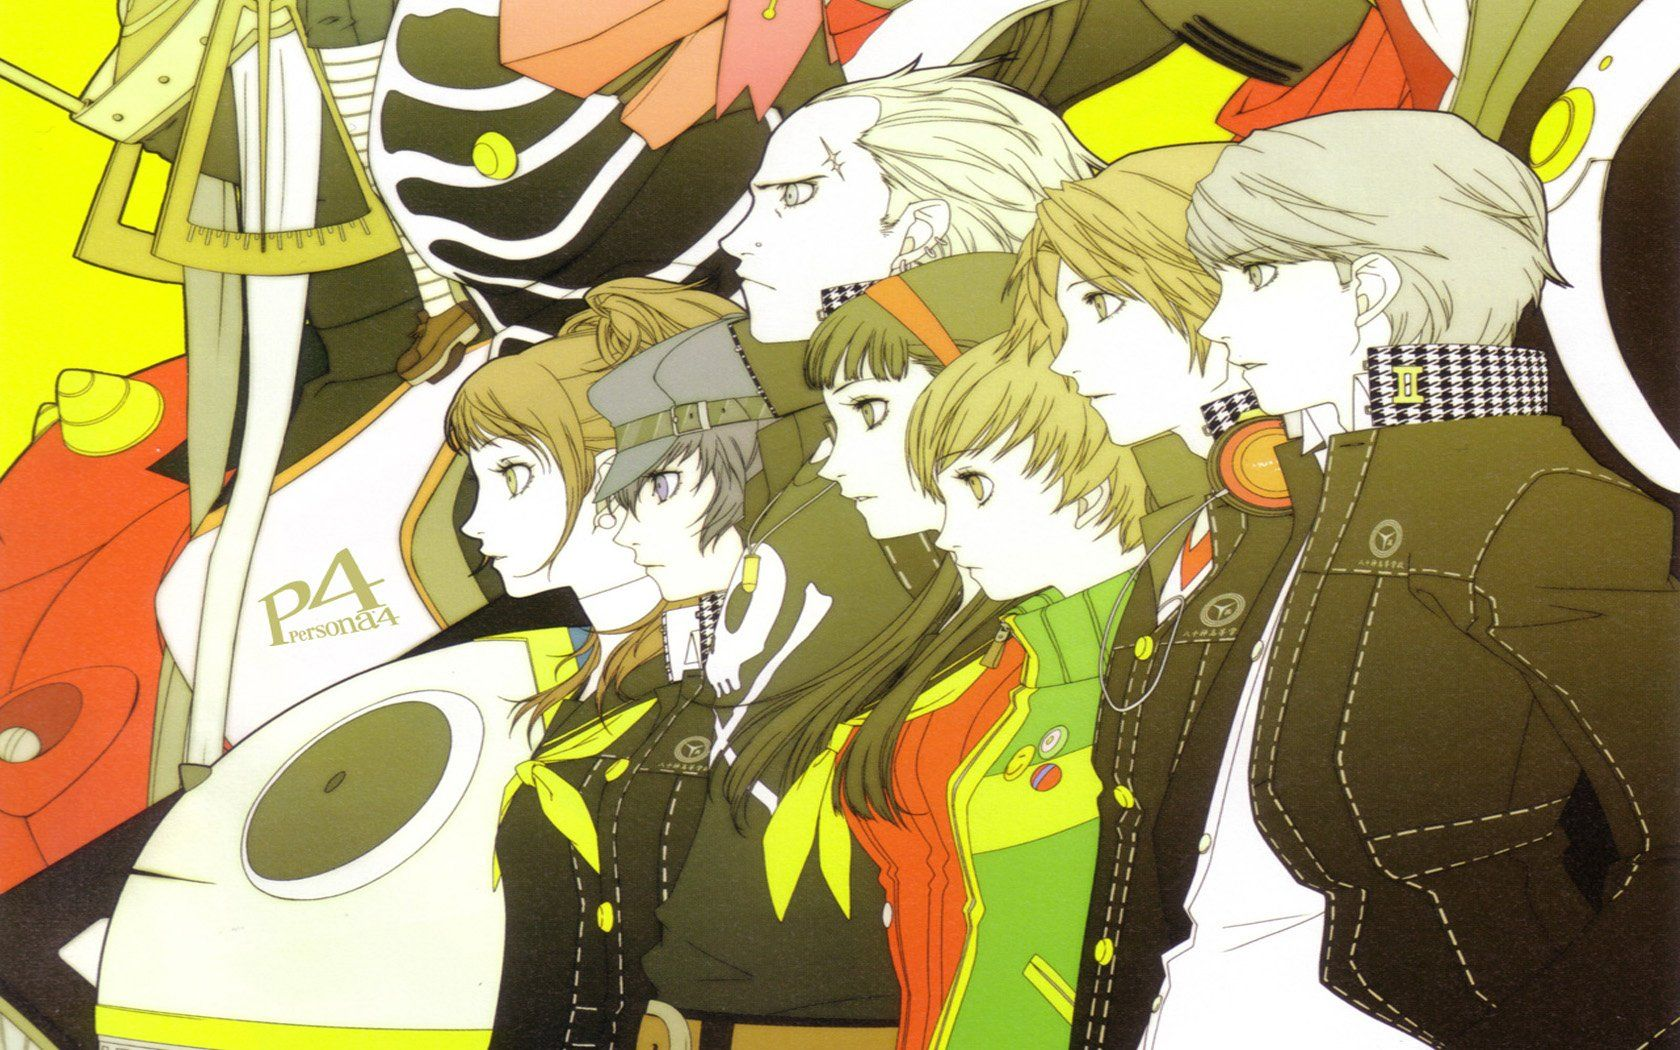 Persona 4 Wallpapers Top Free Persona 4 Backgrounds